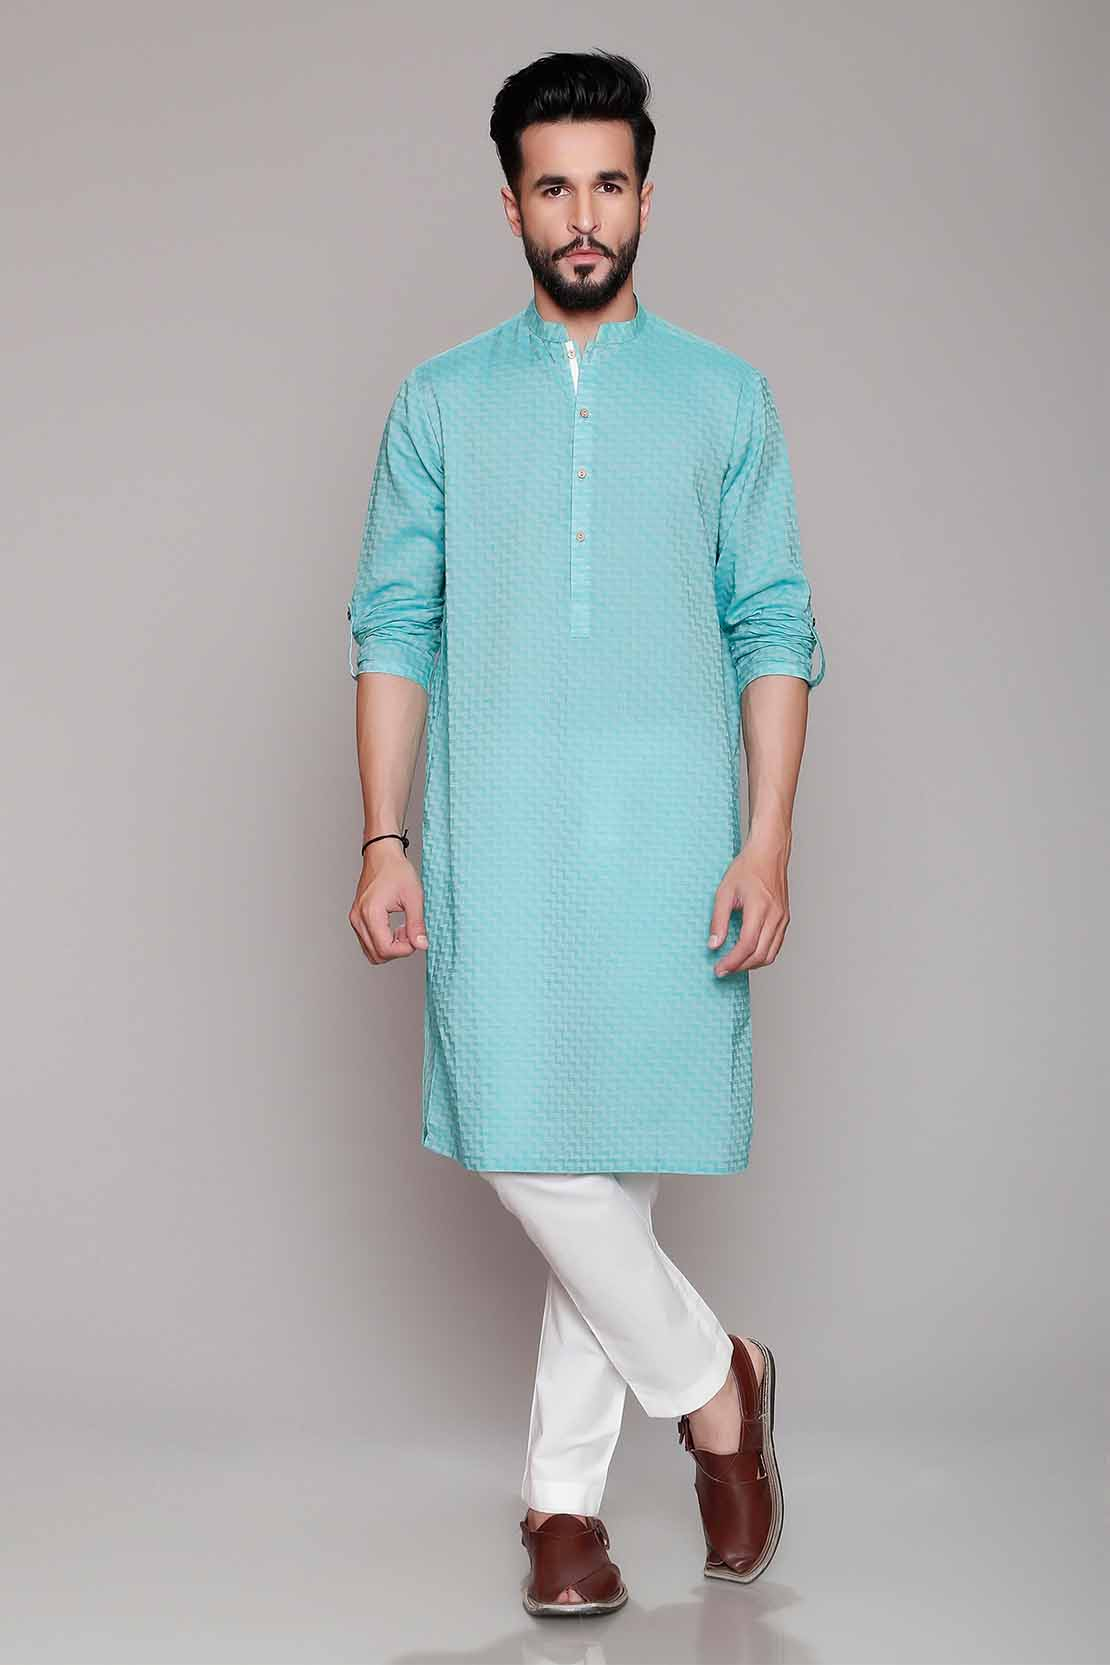 Kurta men latest styles designs recommend to wear in on every day in 2019